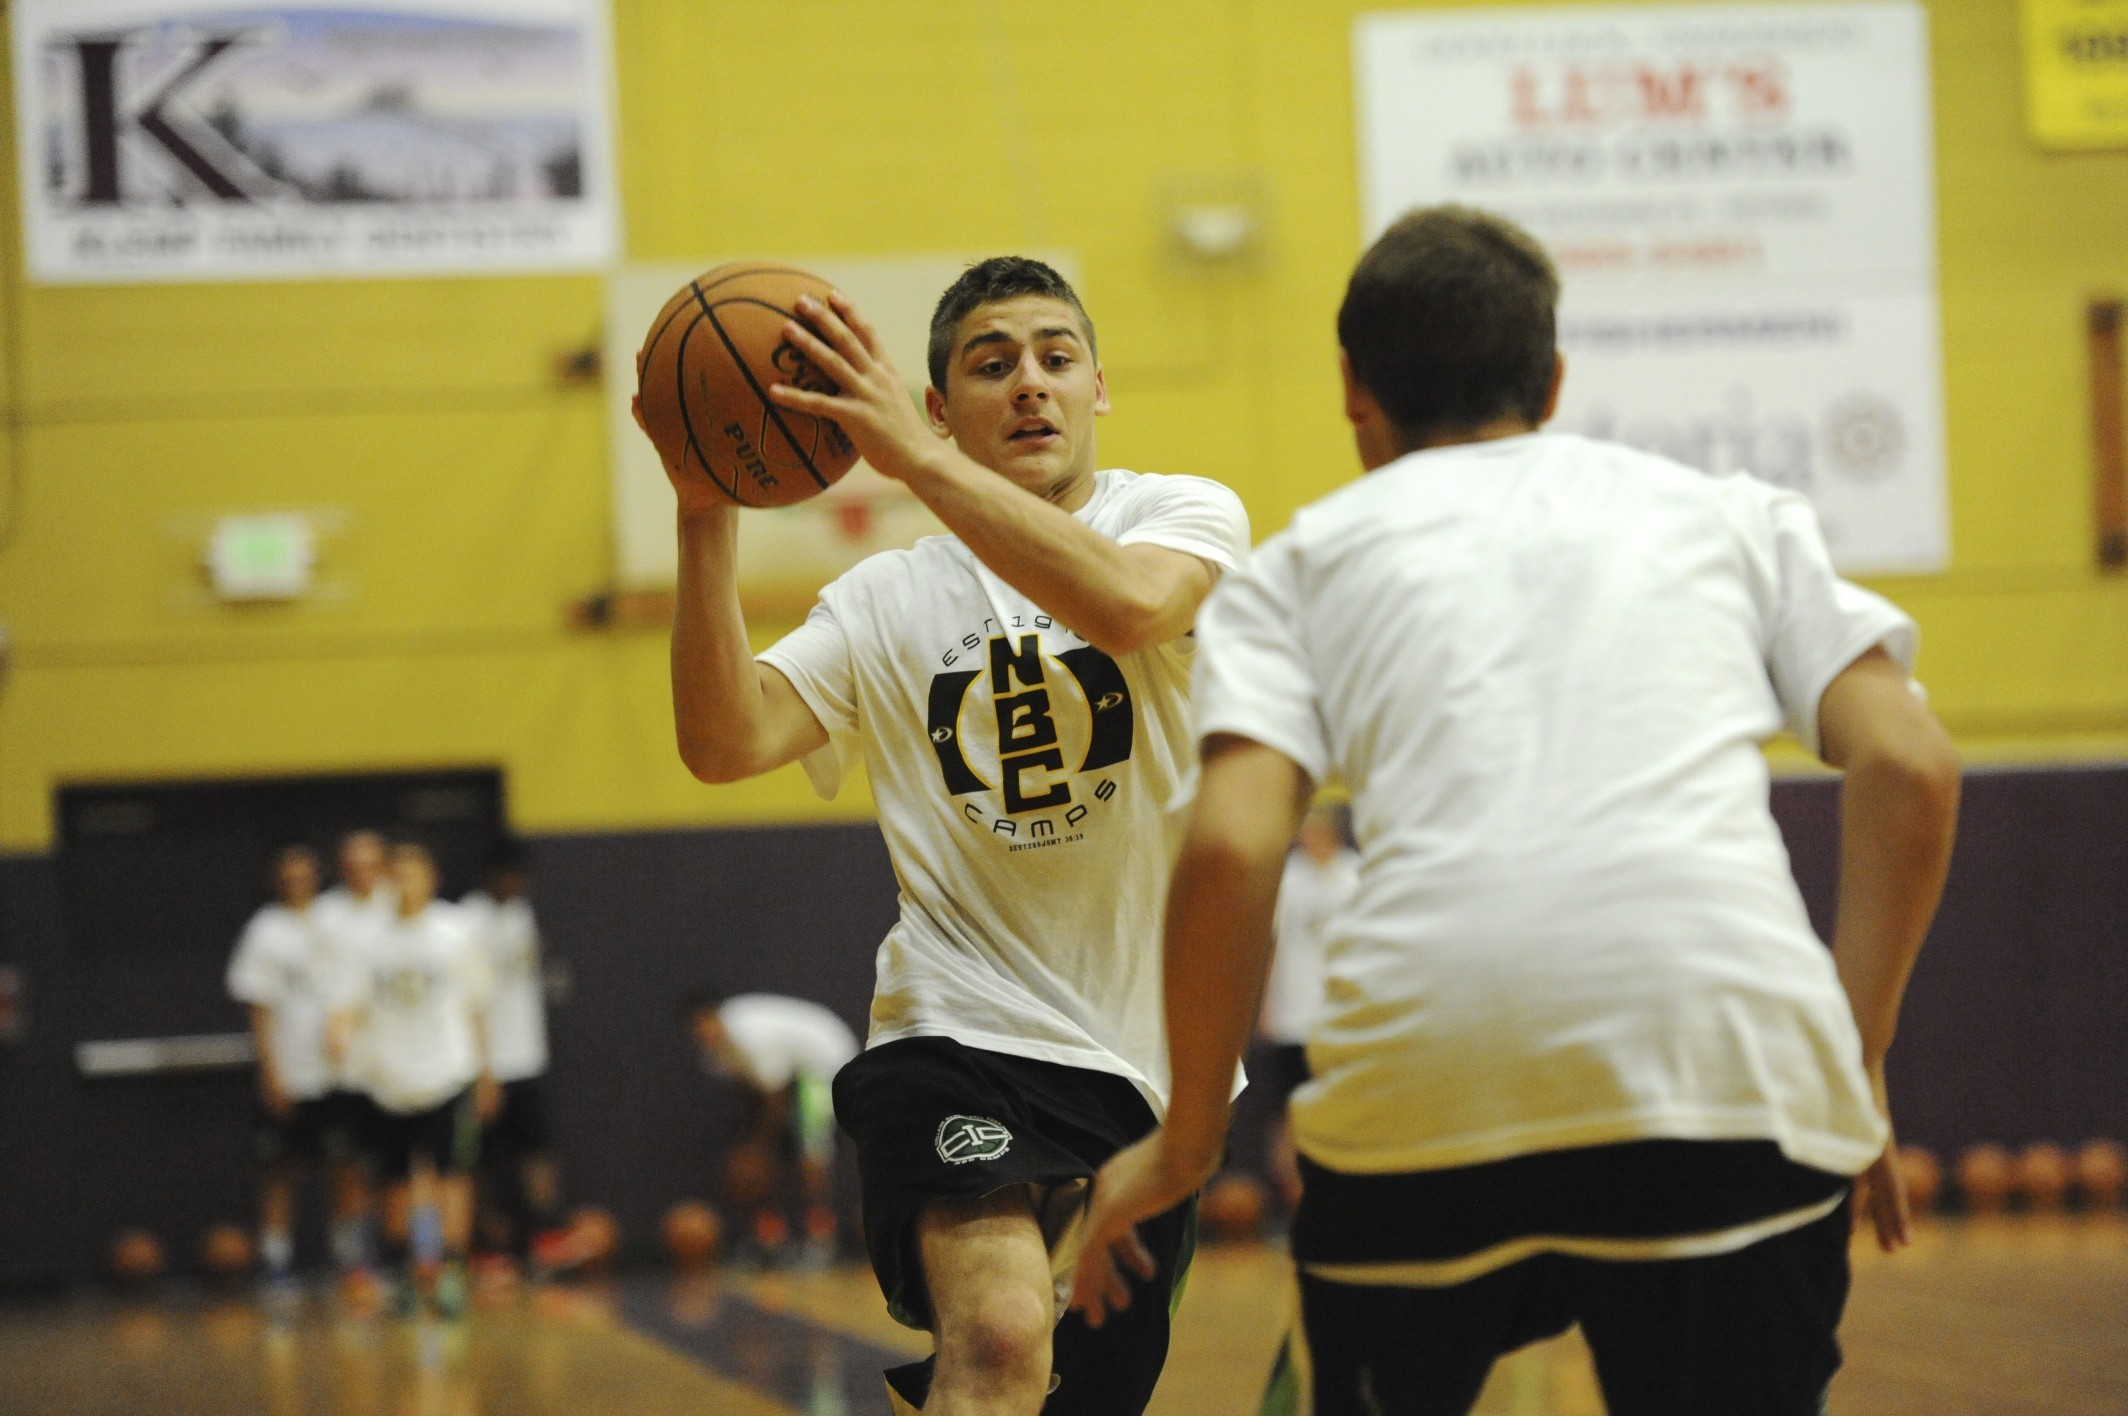 nbc-basketball-camps1.jpg